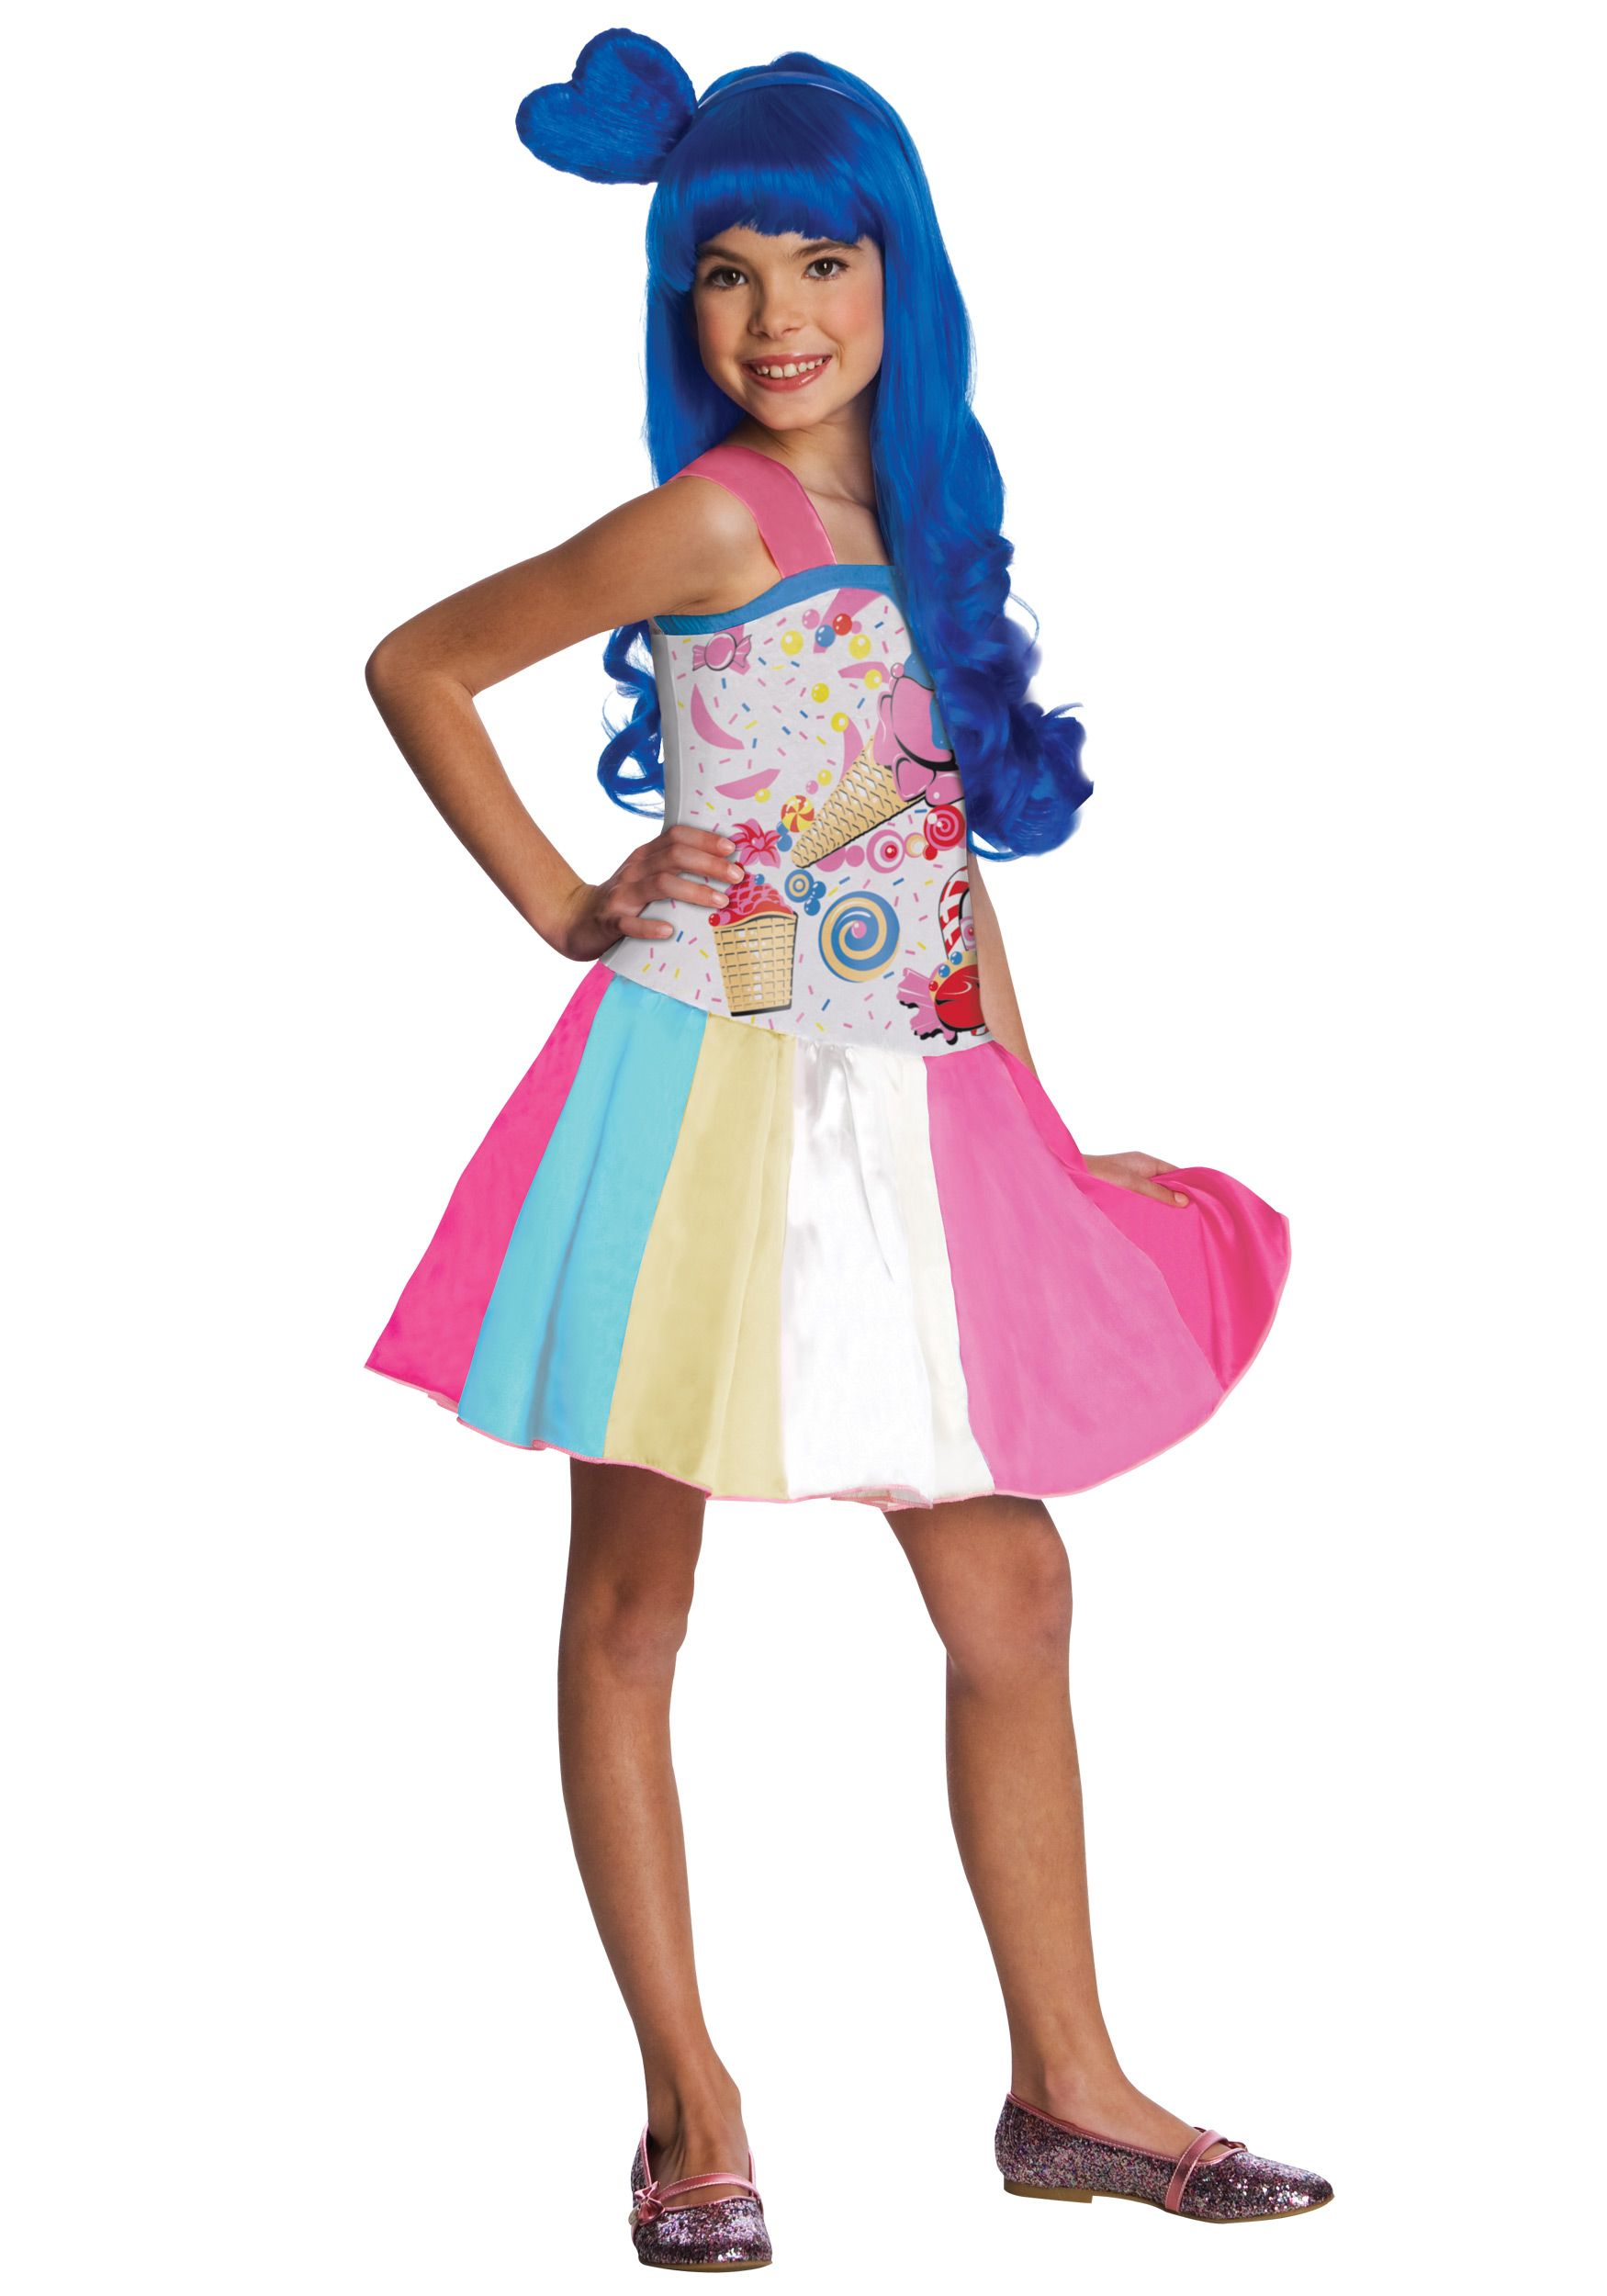 For Charlotte - kids katy perry costume ideas | Costumes | Pinterest ...